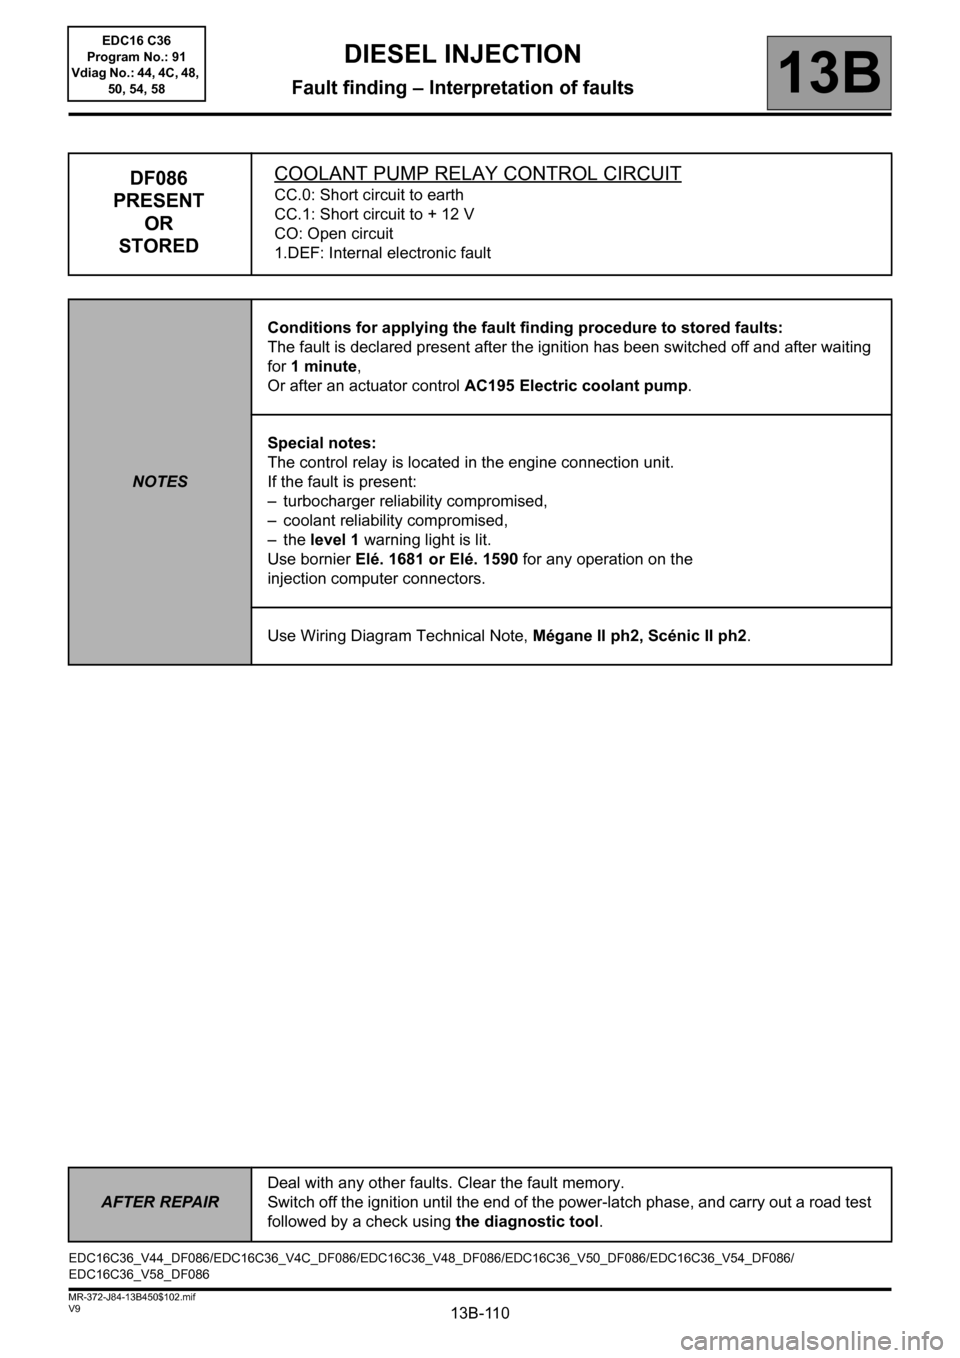 RENAULT SCENIC 2011 J95 / 3.G Engine And Peripherals EDC16C36 Workshop Manual, Page 110